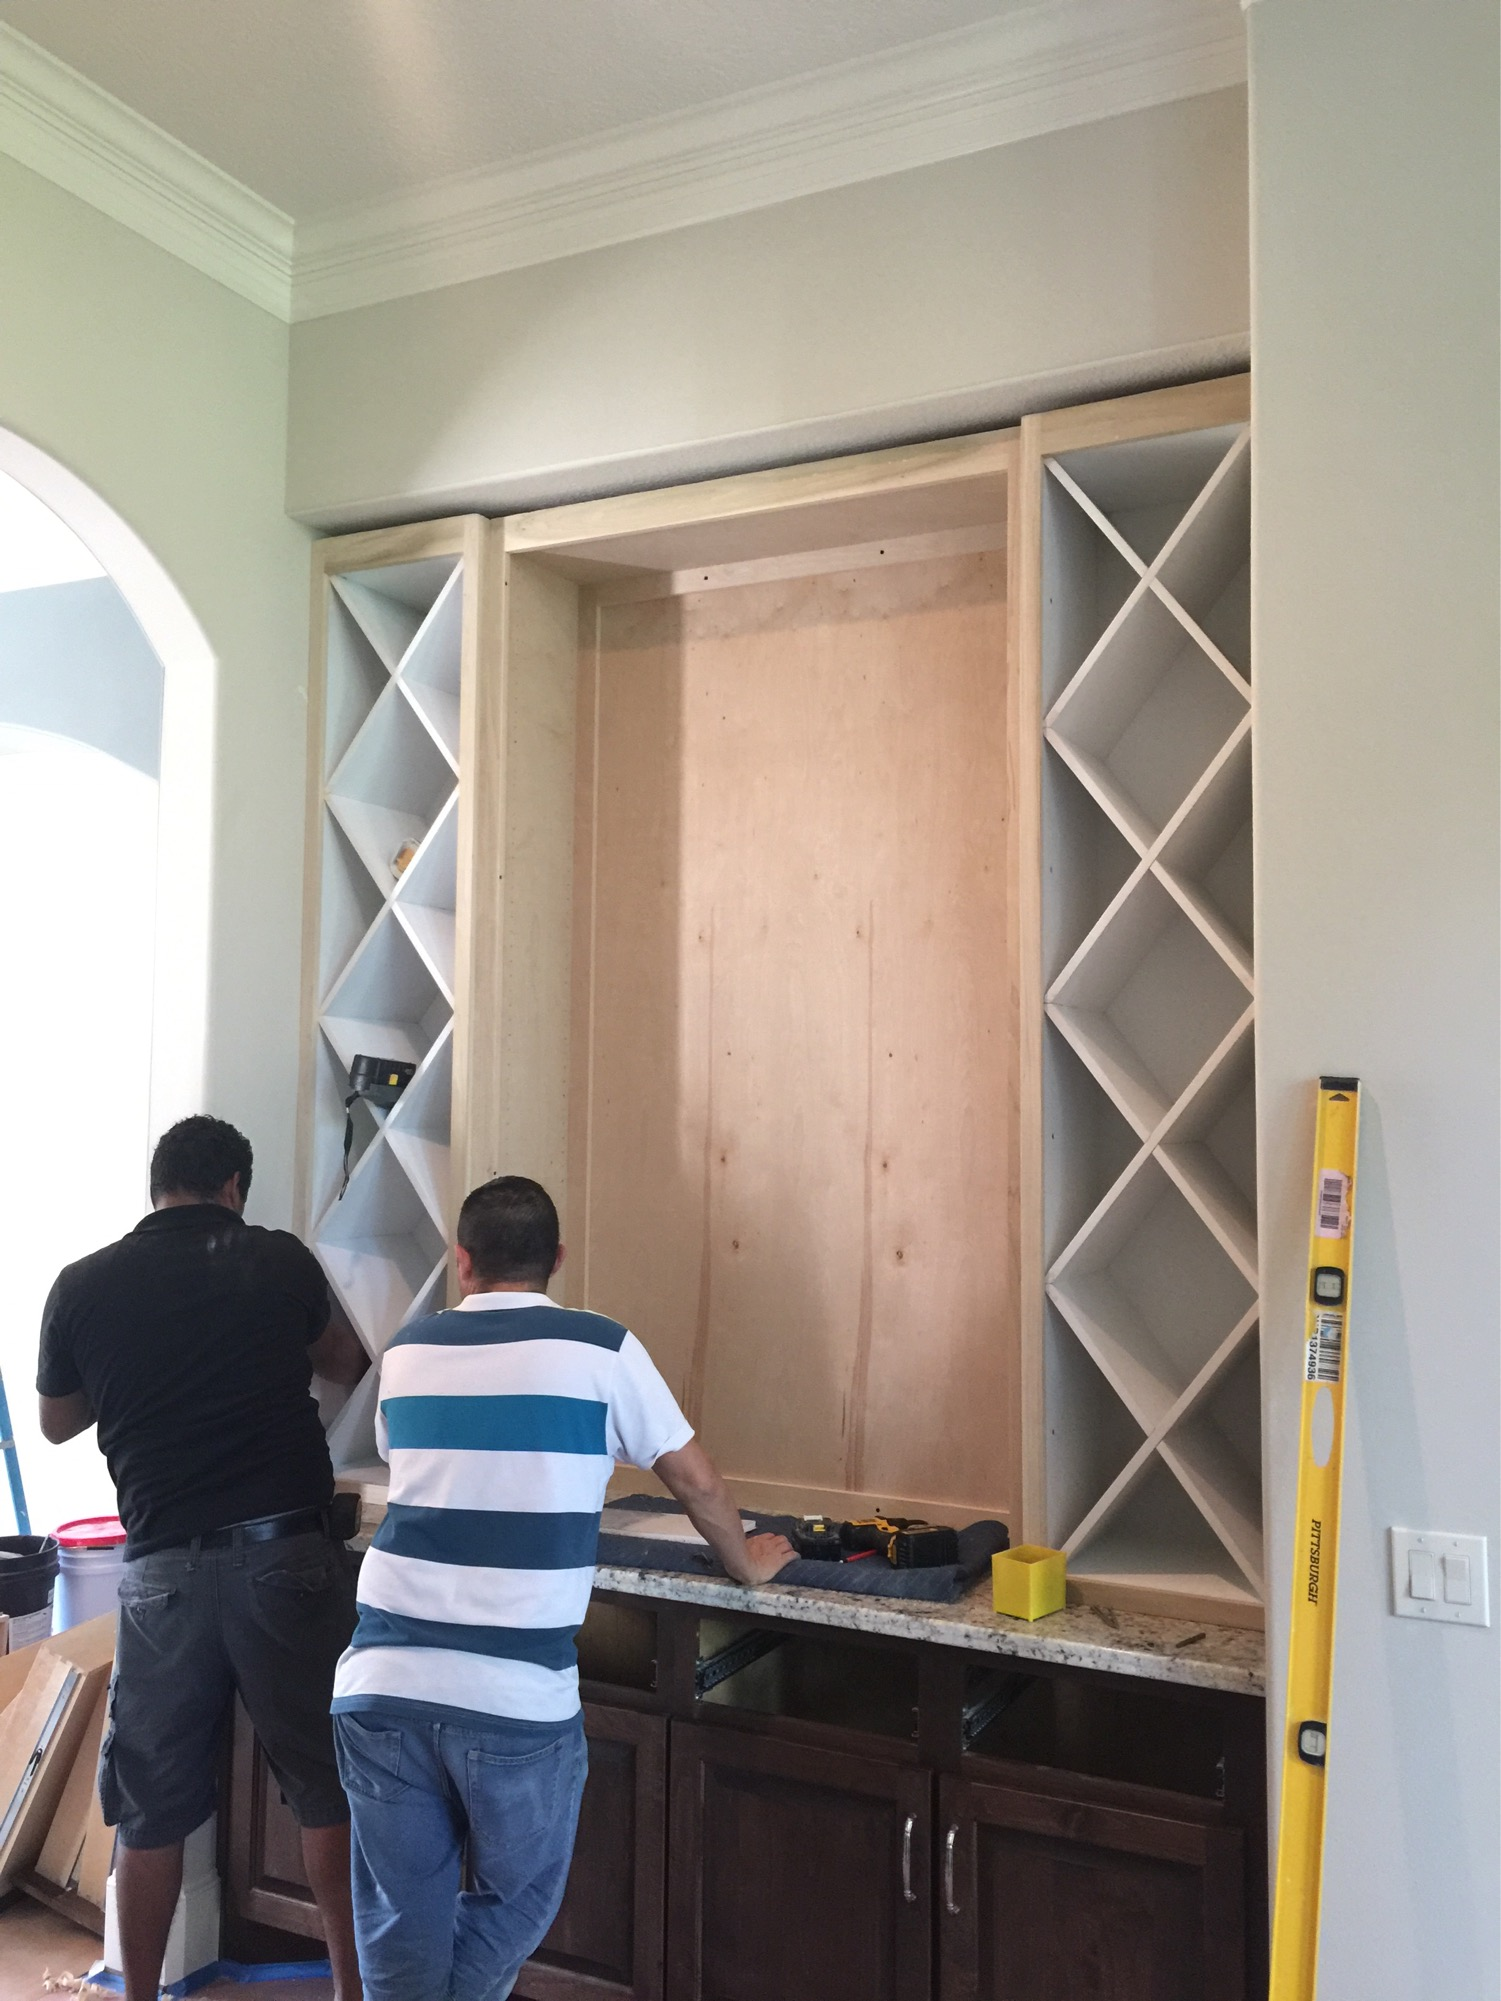 Progress shot - new upper cabinetry with wine racks added for the bar area #remodel #winerack